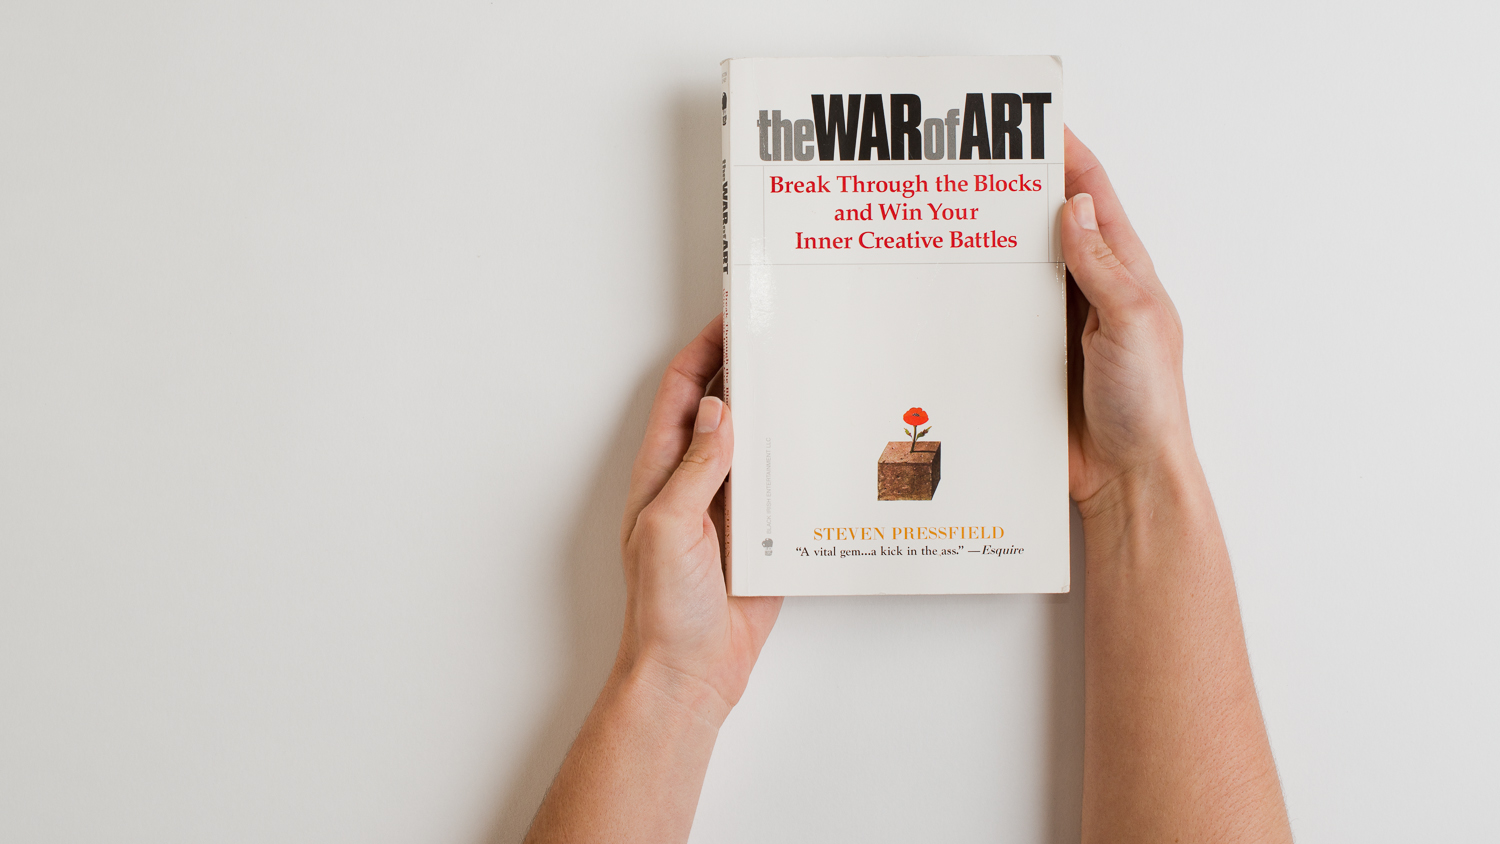 idealust the war of art blogs for creative entrepreneurs_gallery-1